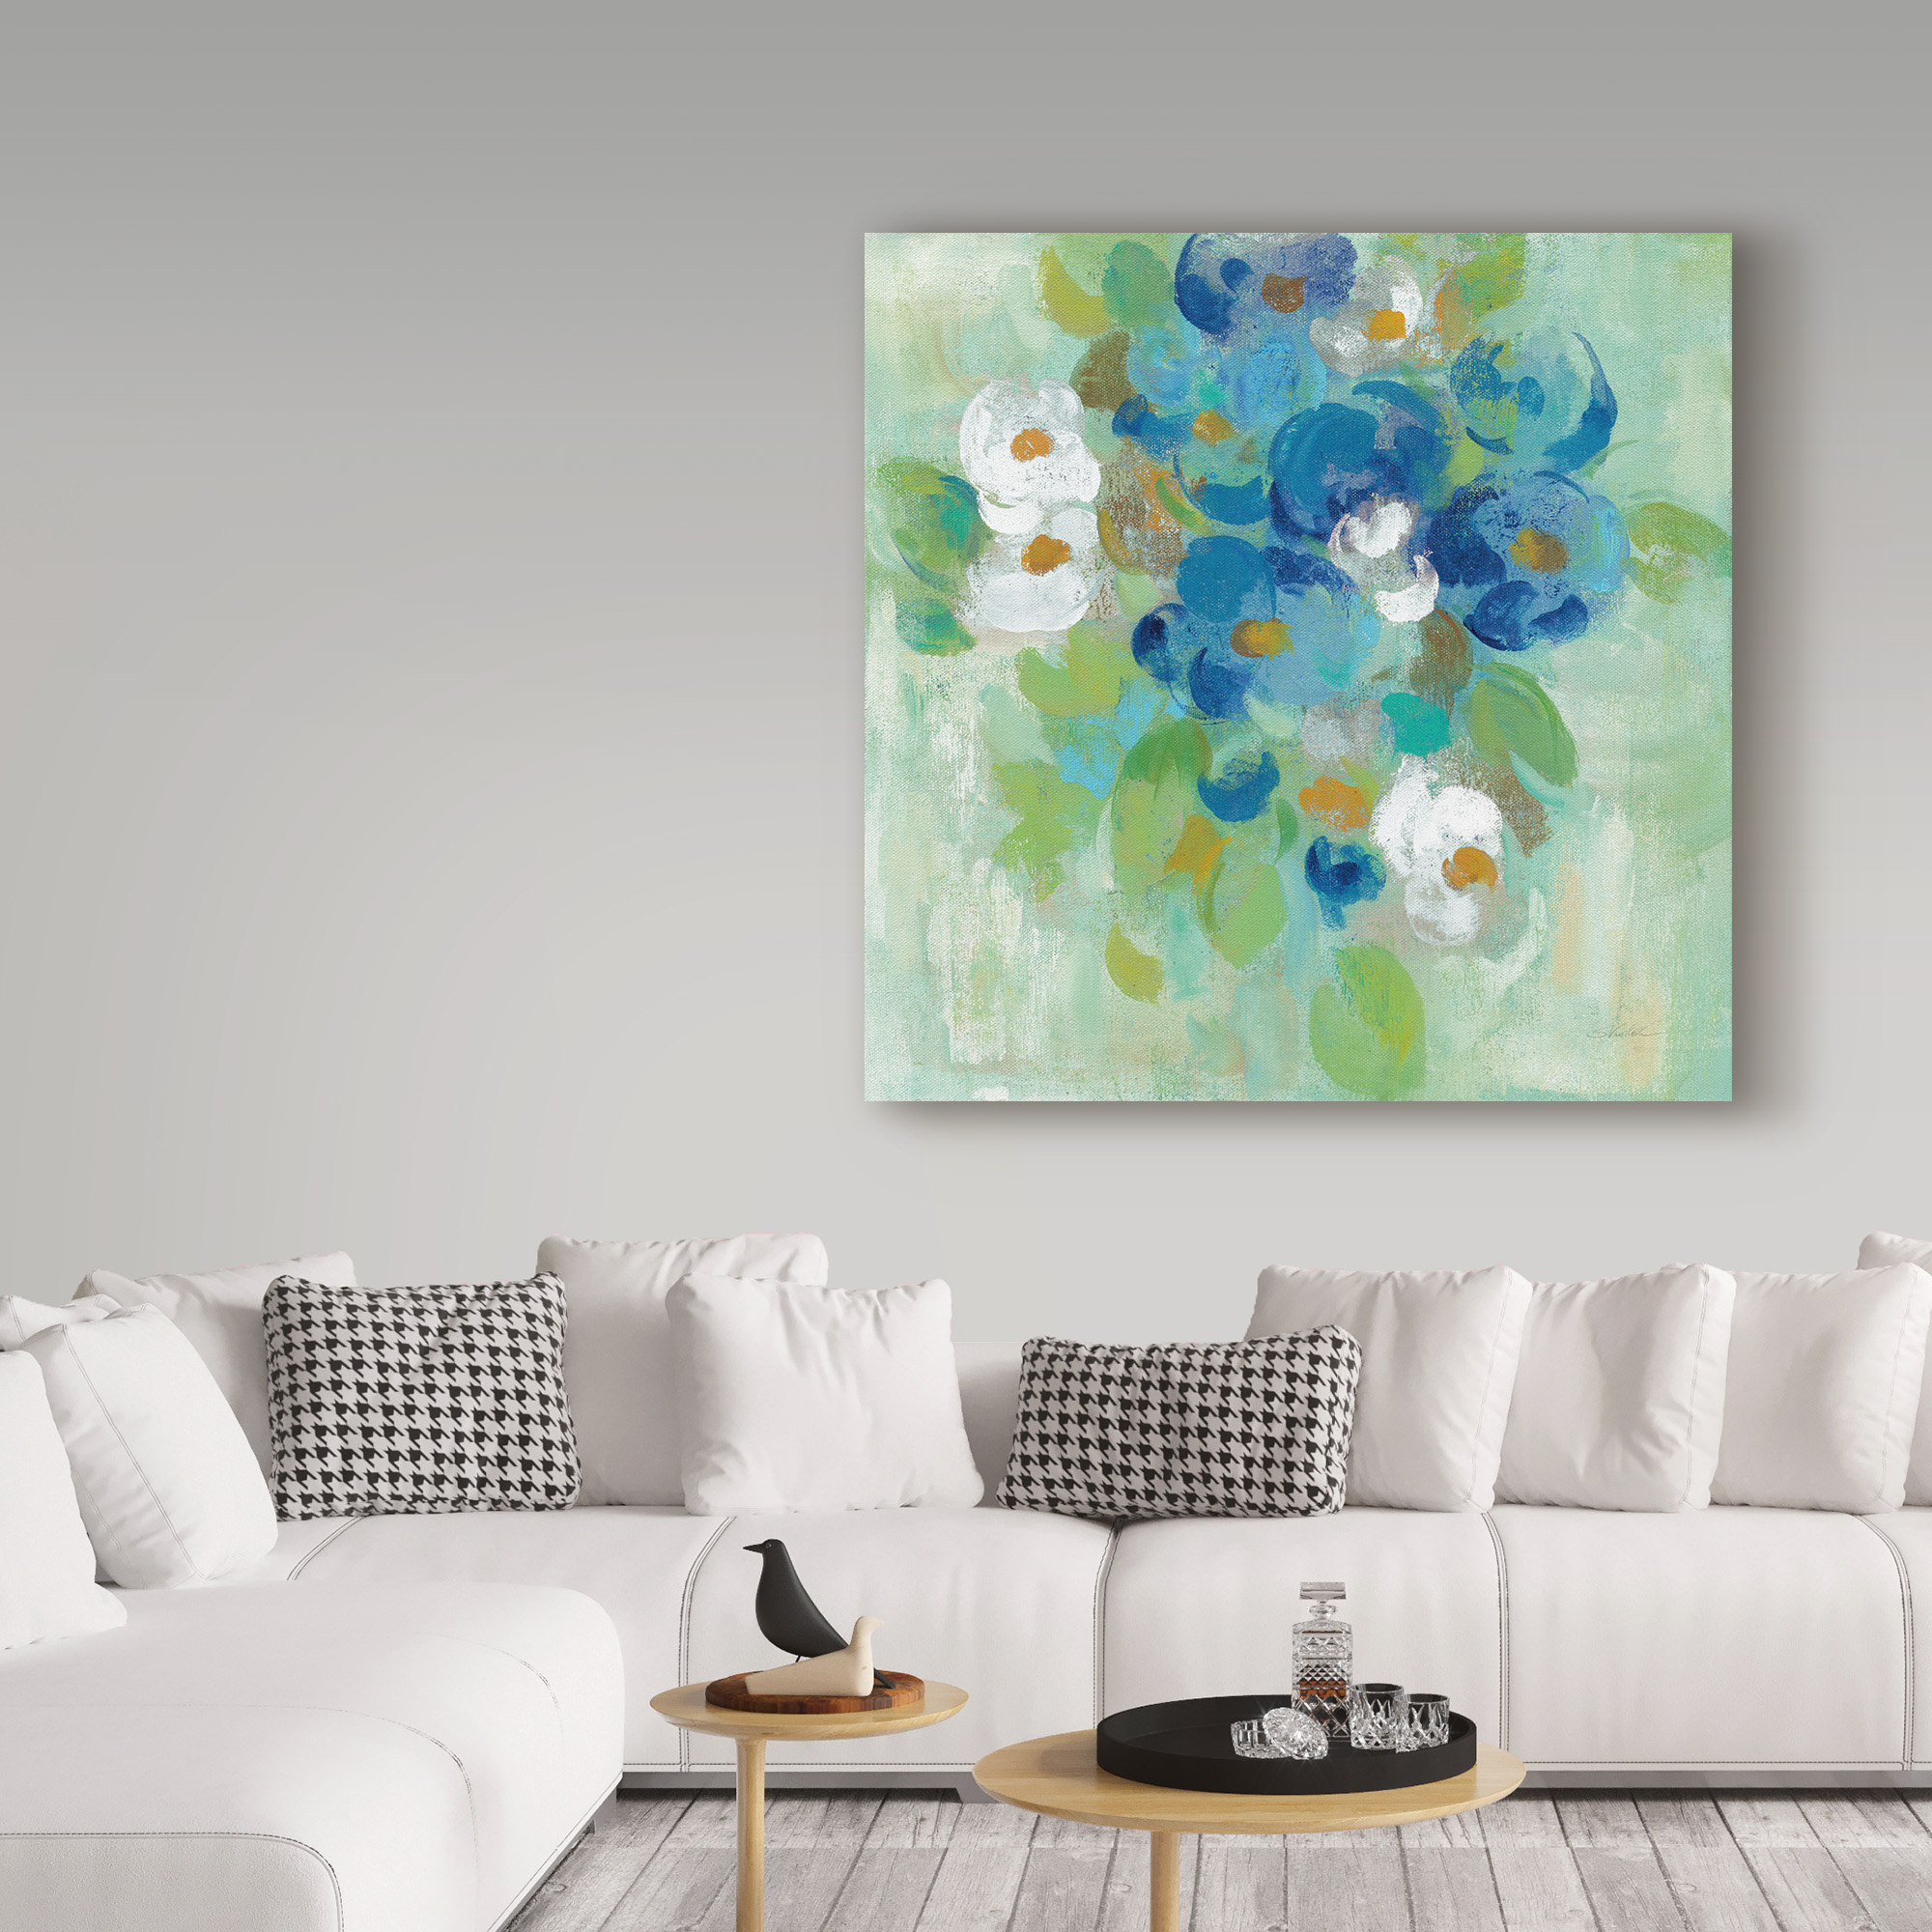 Global Gallery Silvia Vassileva Giclee Stretched Canvas Artwork 18 x 18